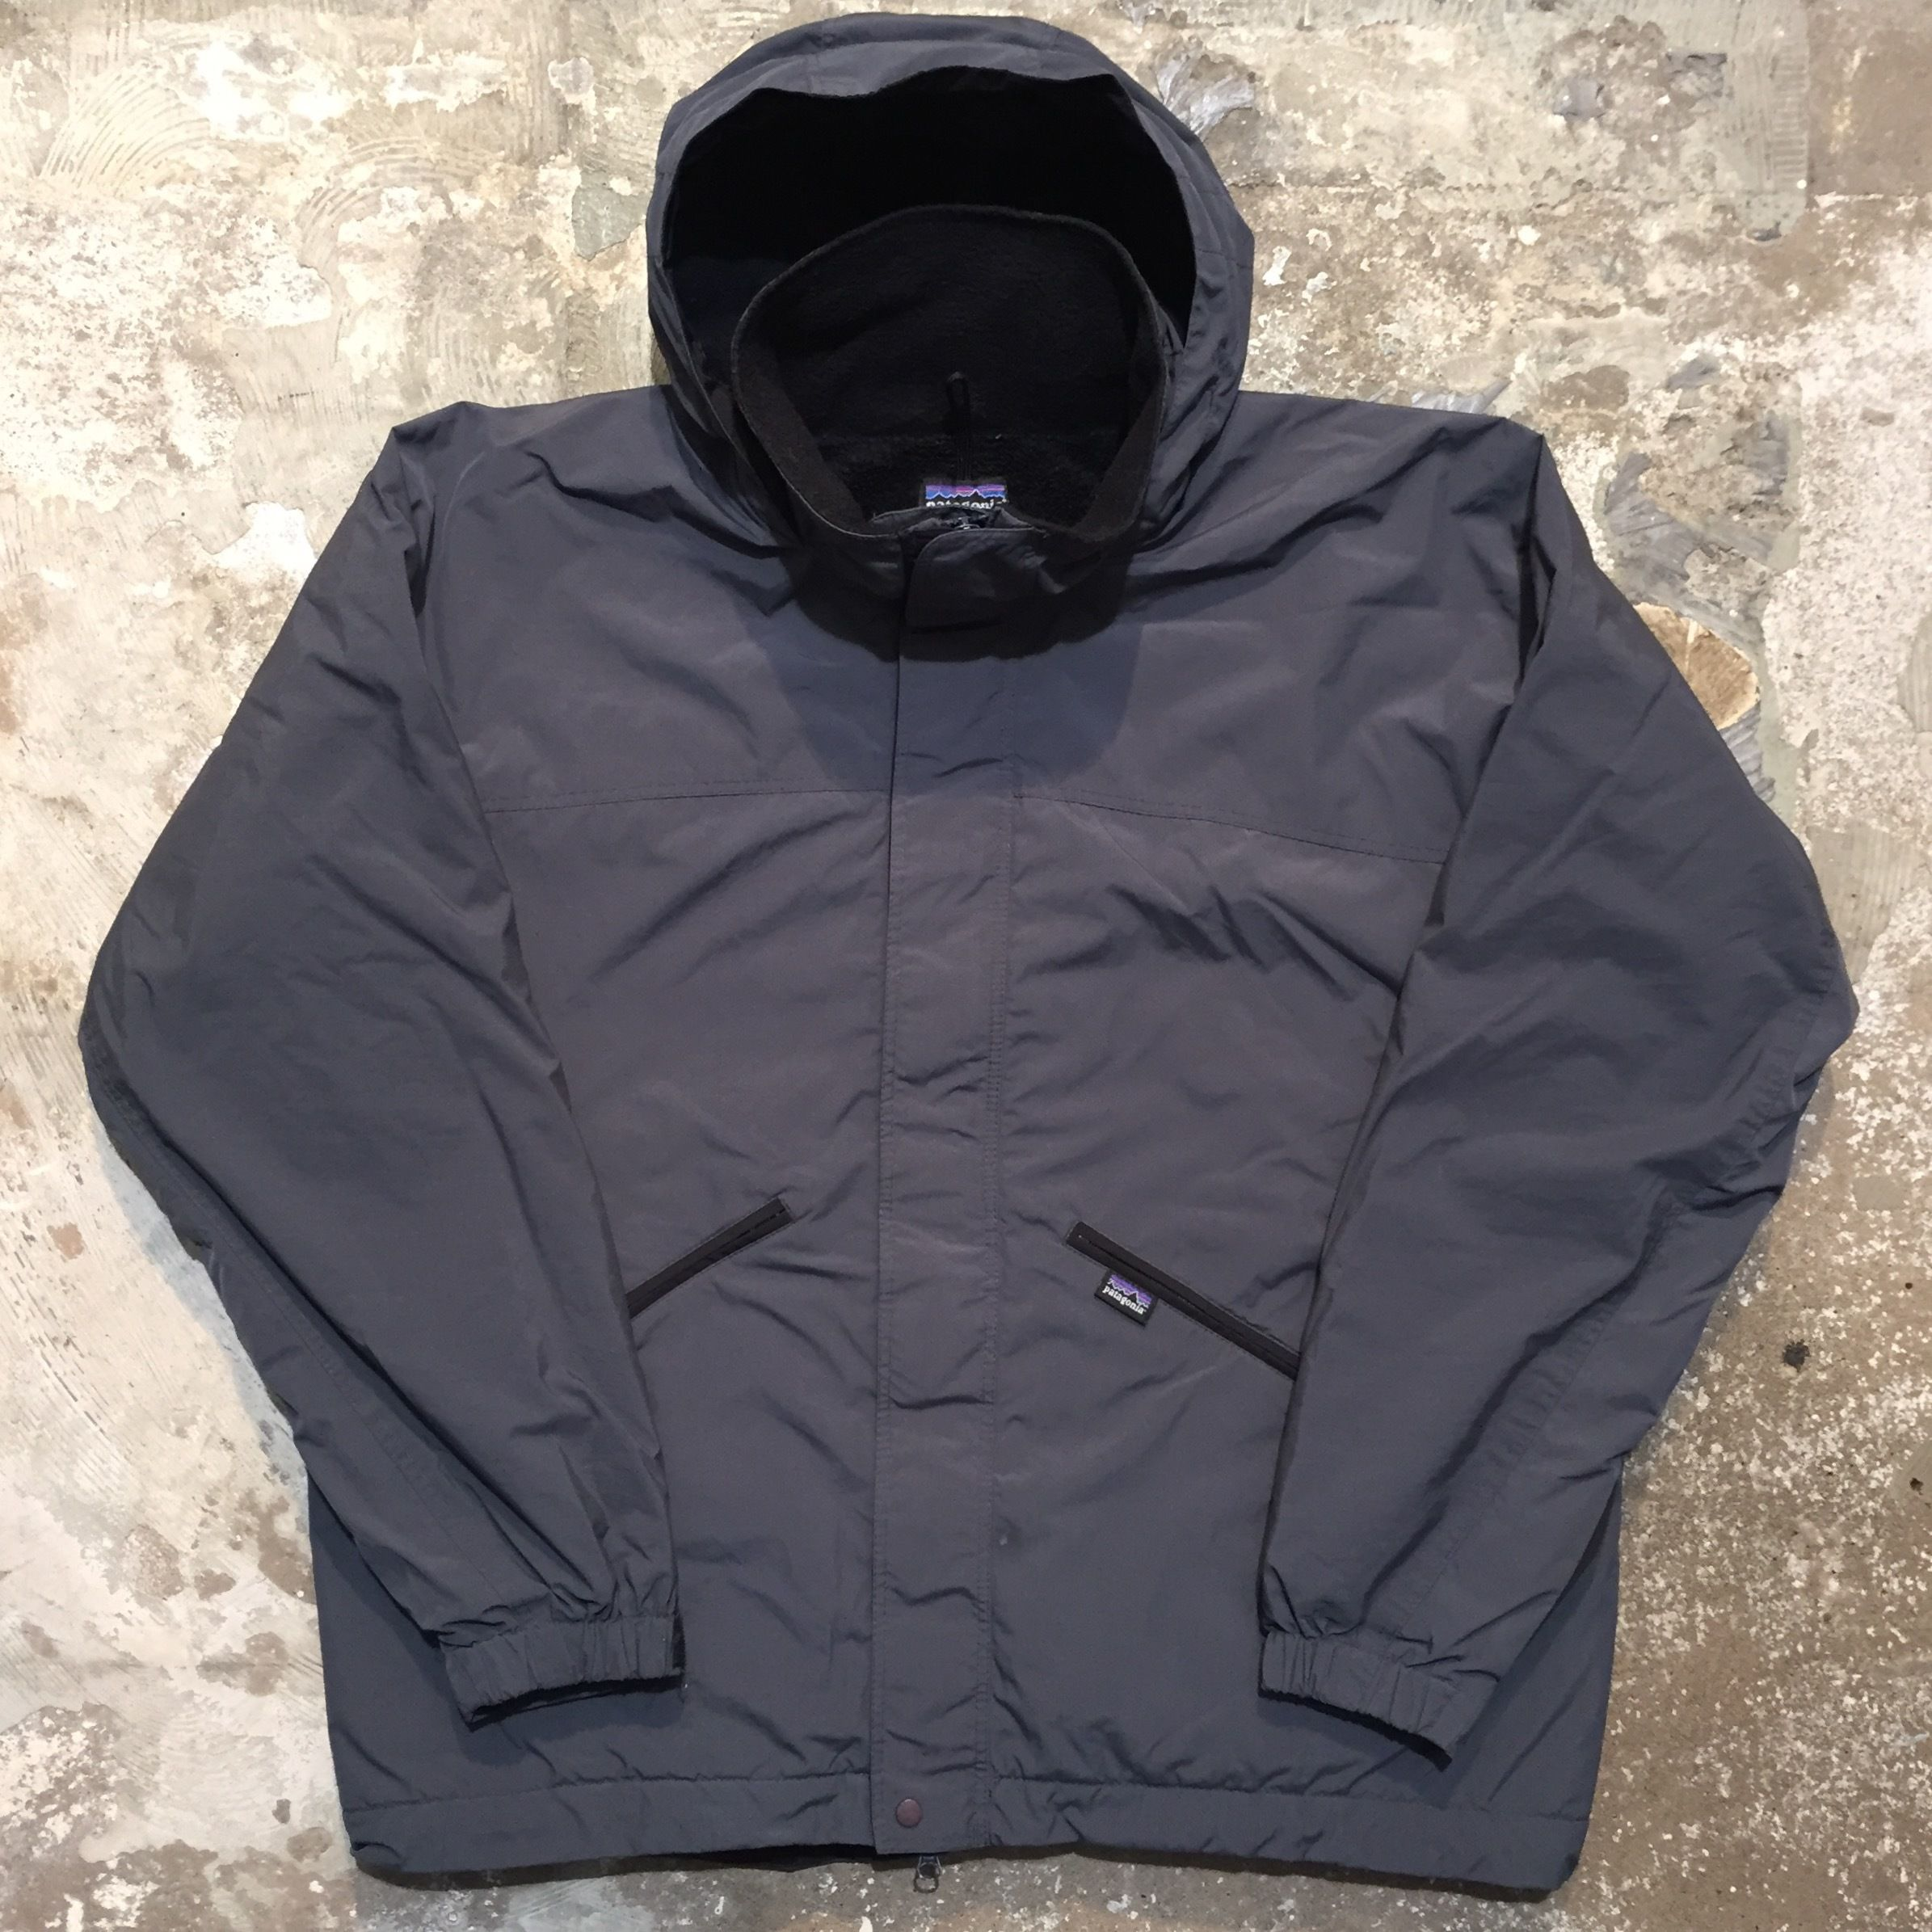 90's Patagonia Fleece  Lined Nylon Jacket